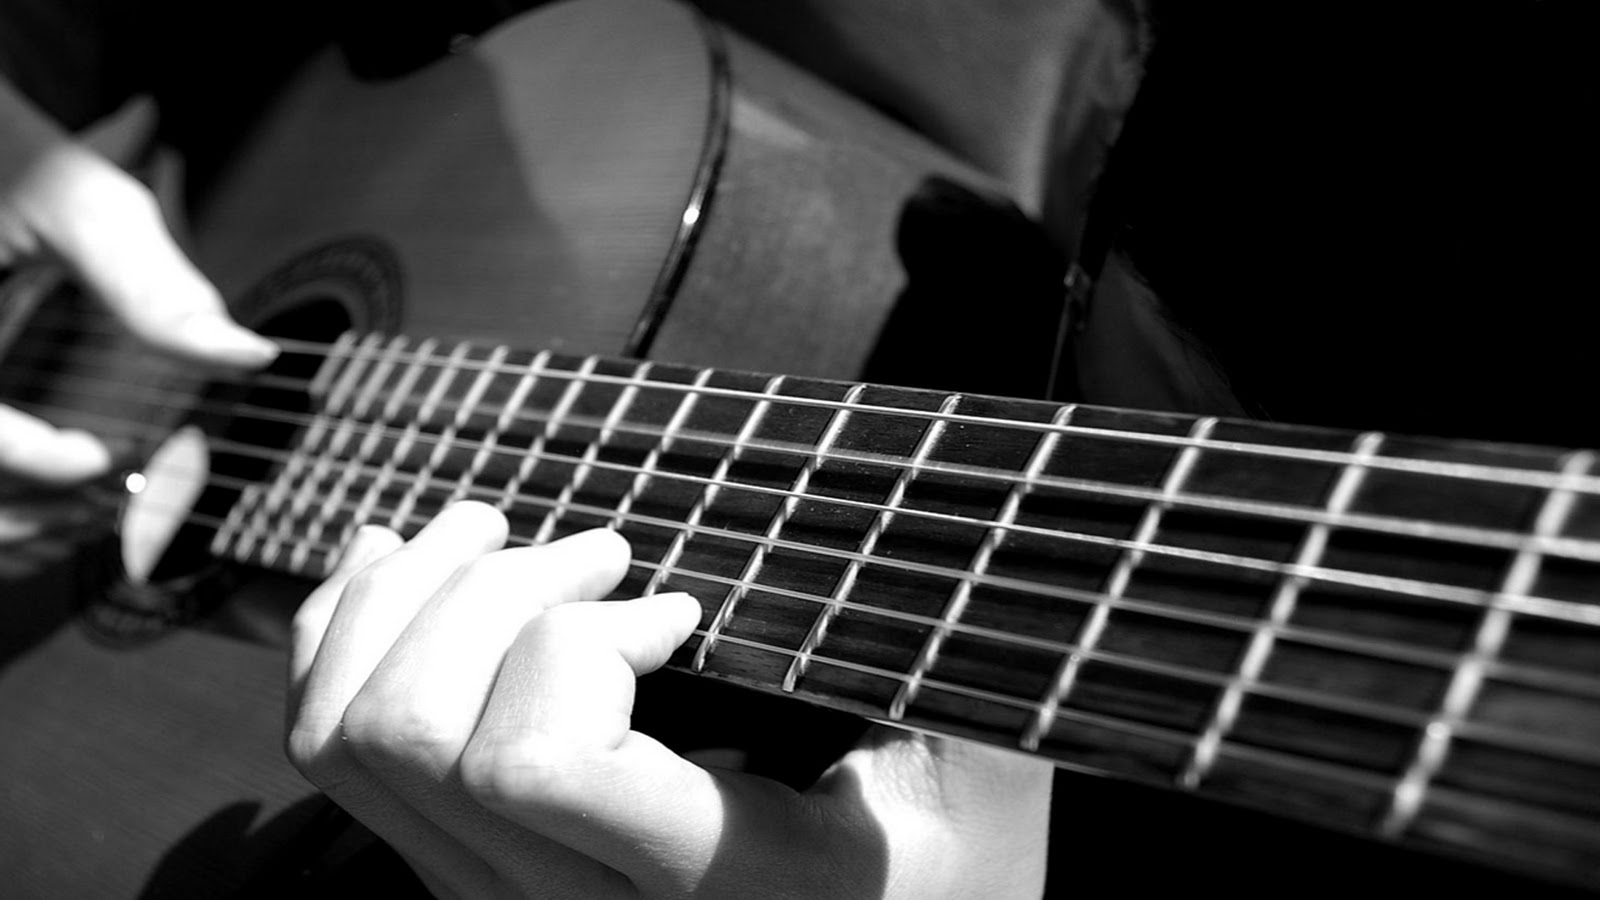 Classical+Guitar+Playing+Acoustic+Hands+Fretboard+Fingers+Fingerpicking+Black+and+White+Music+Desktop+HD+Wallpaper+1920x1080+Great+Guitar+Sound+www.GreatGuitarSound.Blogspot.com.jpg